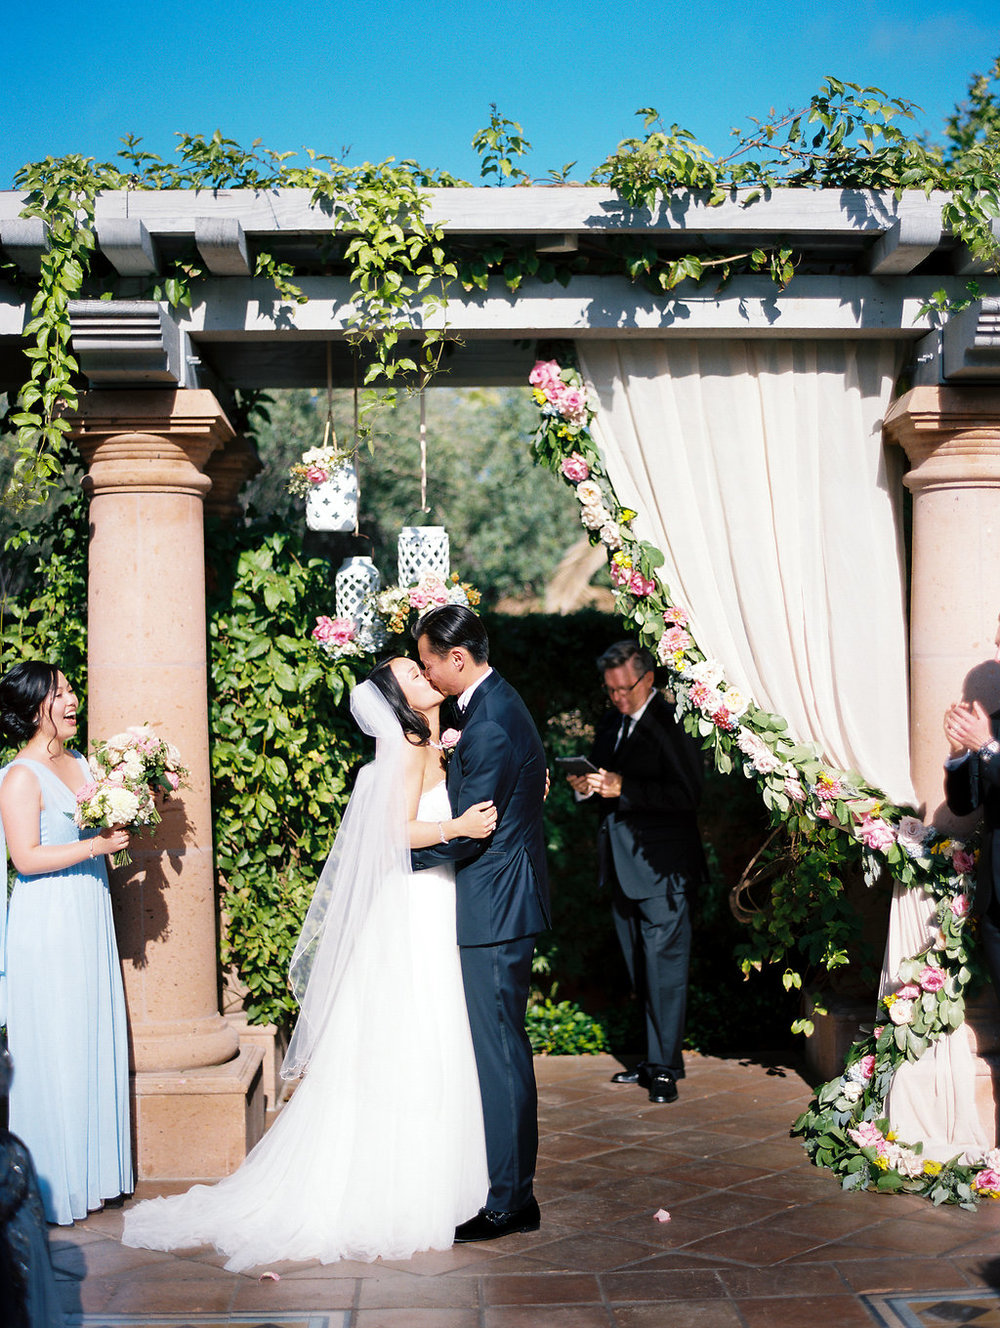 Portia and Charles, Wedding at Rancho Valencia